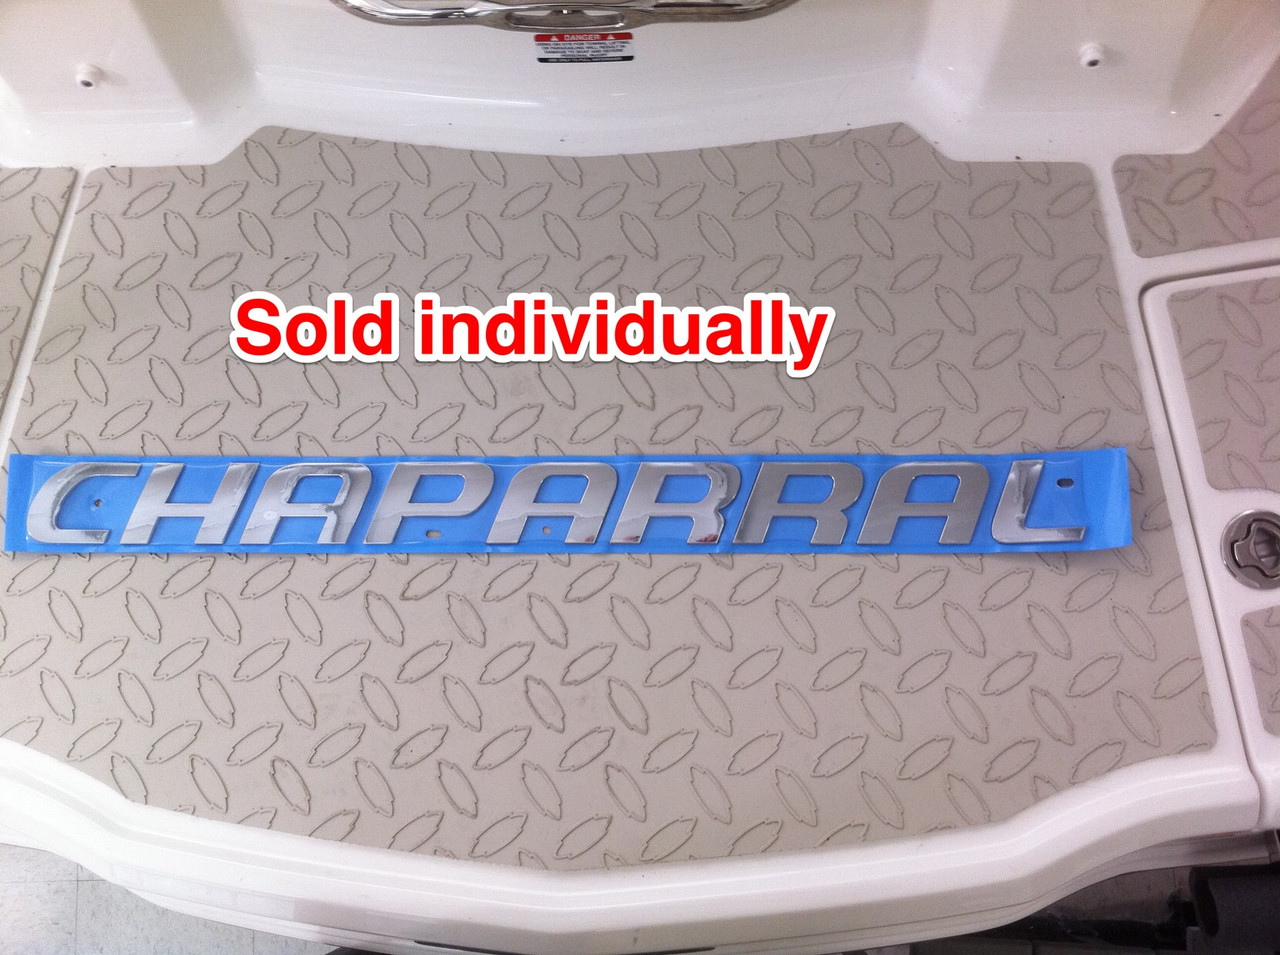 CHAPARRAL LARGE LOGO CHROME INJECTION MOLDED 32 X 2.5 - 14-00146 **In Stock & Ready To Ship!